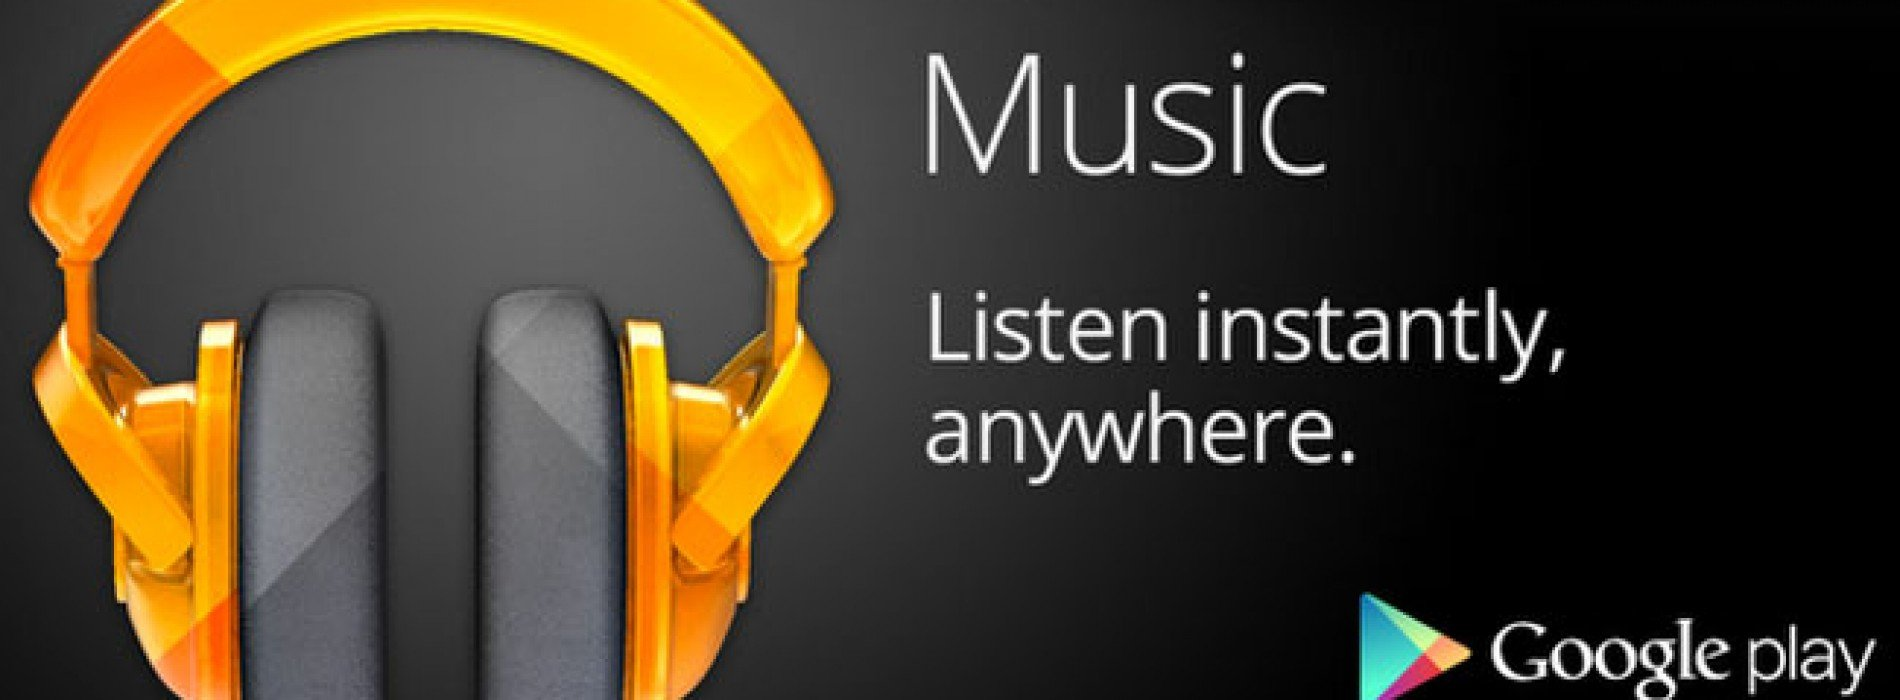 Google Play Music update includes SD support